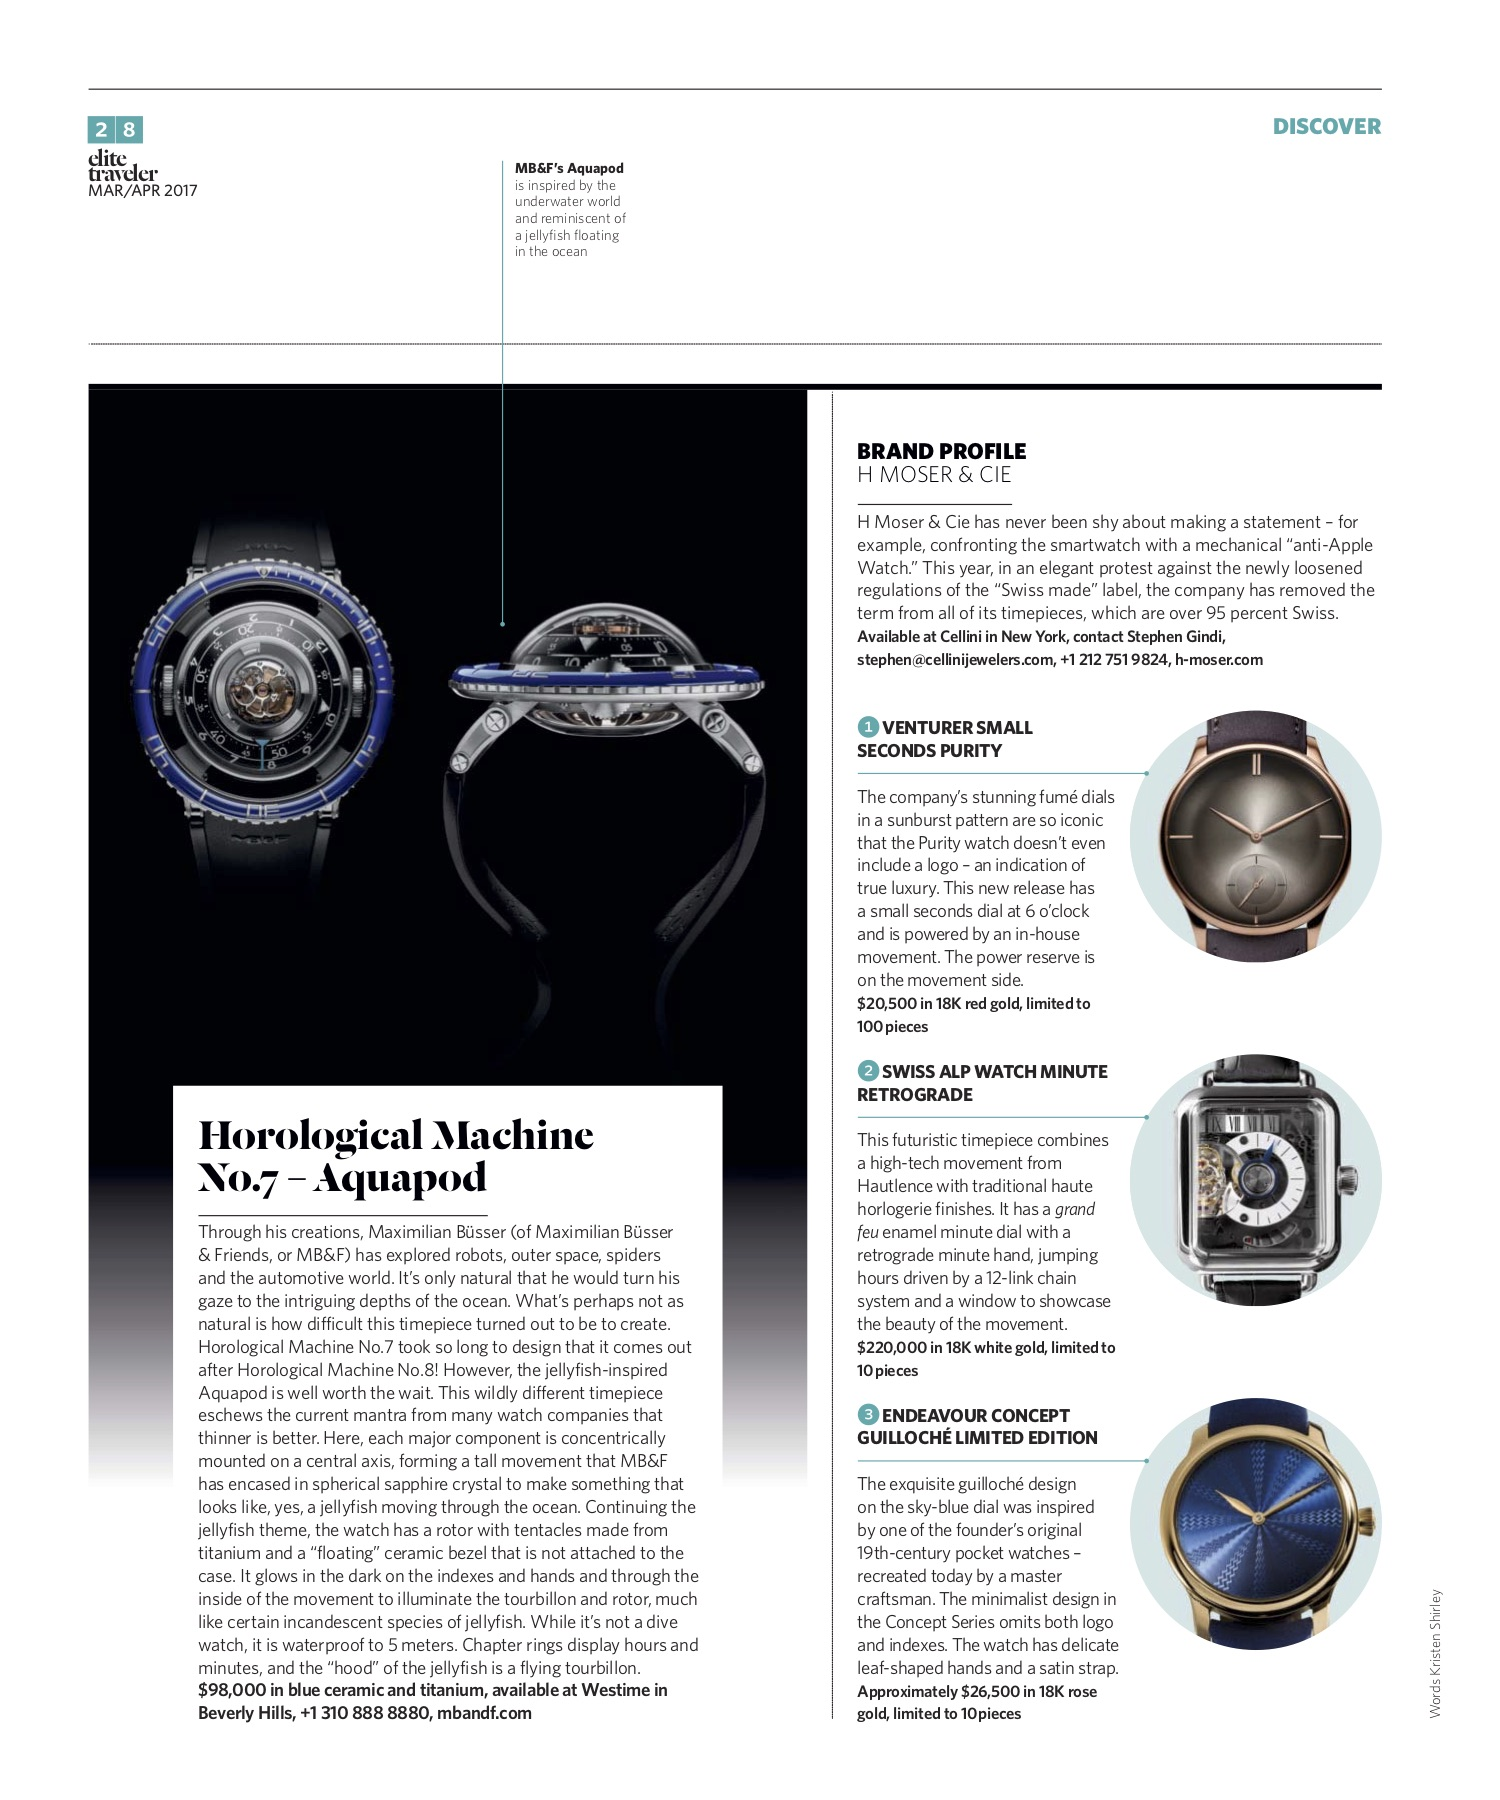 March/April 2017 | MB&F Aquapod, H Moser & Cie Profile